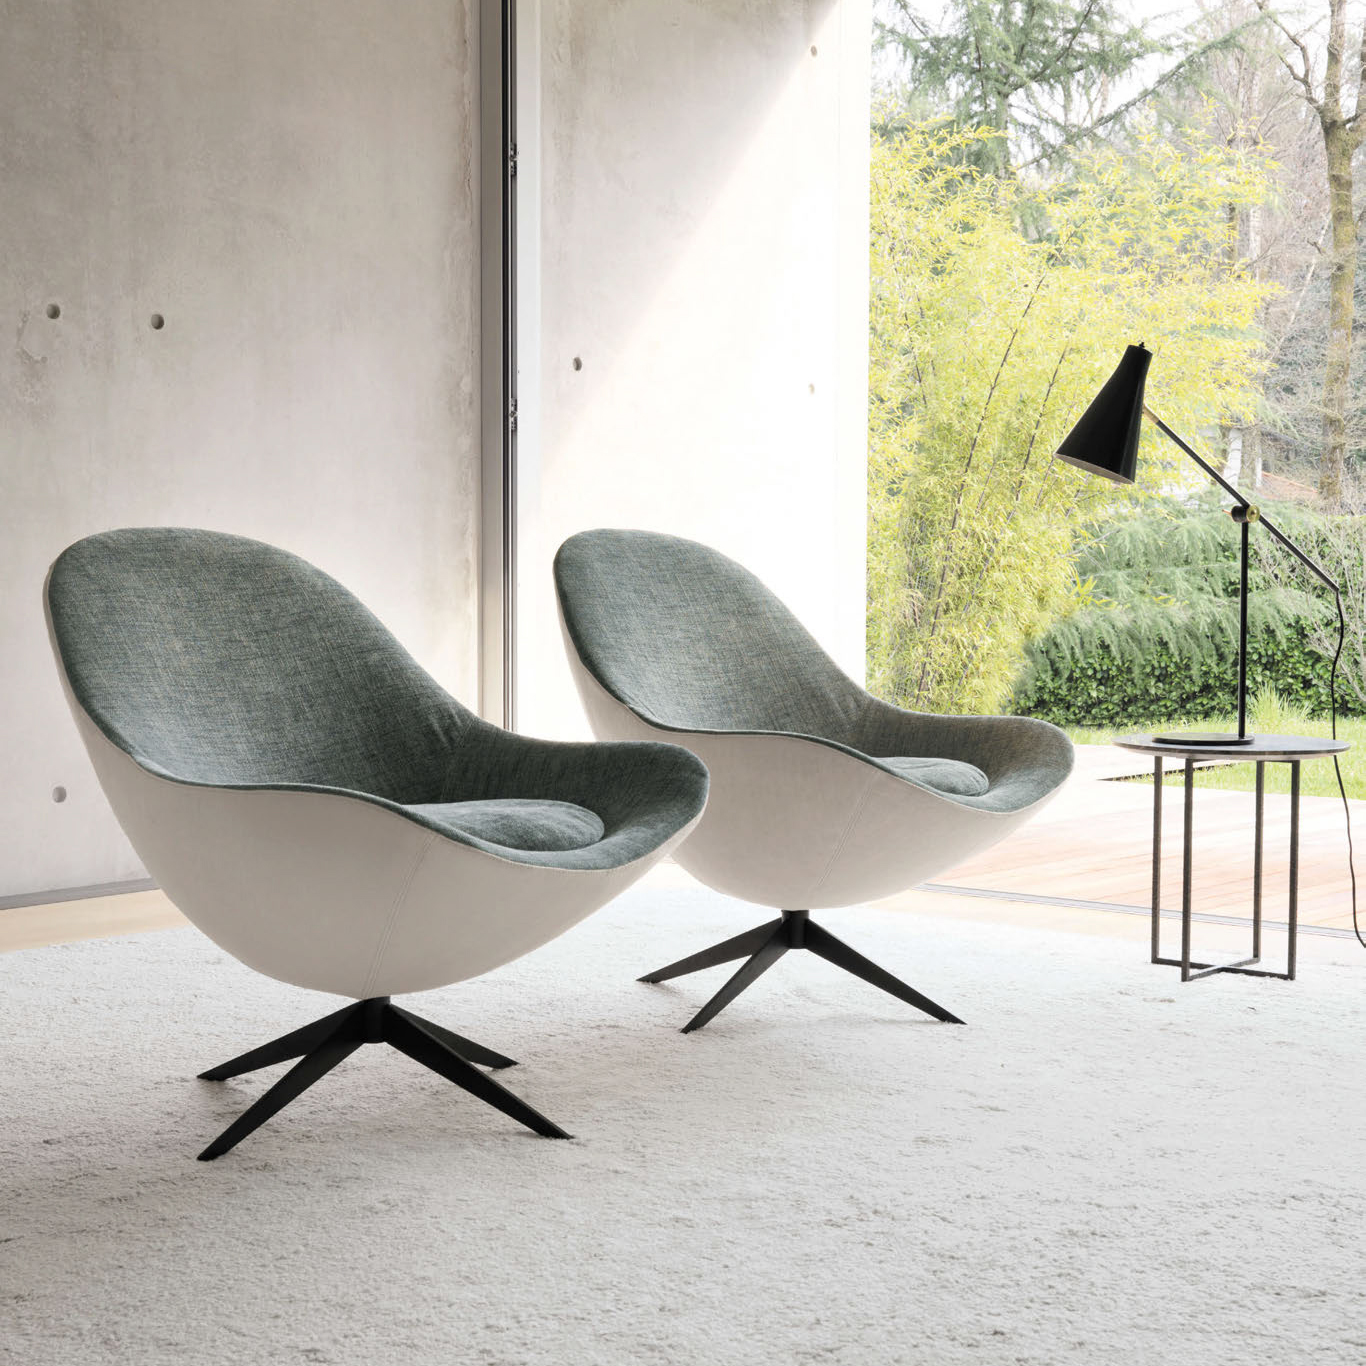 Luxury Italian Soor Lounge Chair Italian Designer